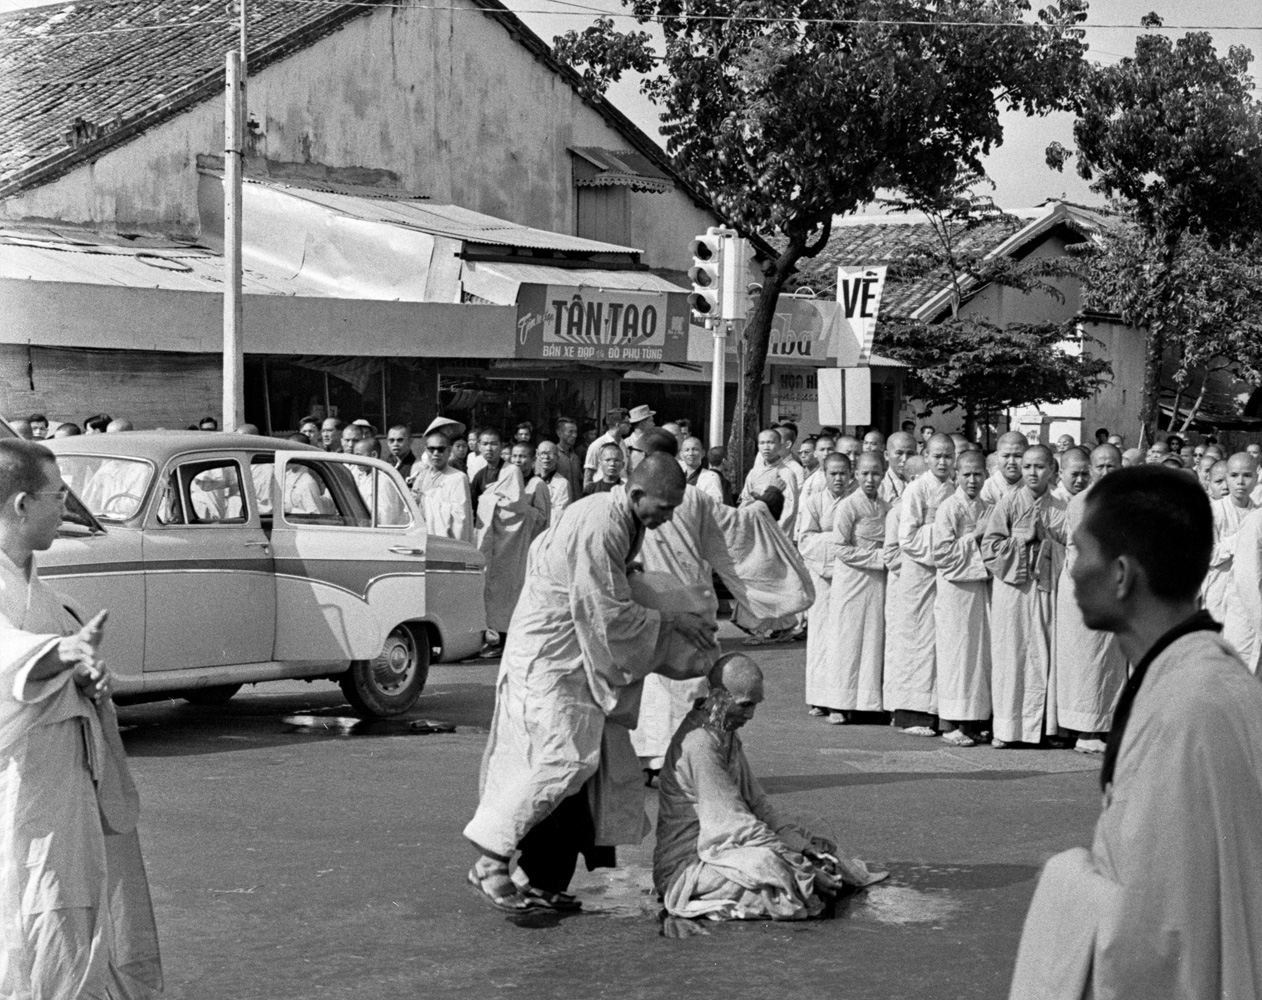 Buddhist monk Quang Duc emerged from a car and sat in the center of the intersection while a younger monk poured gasoline over him.